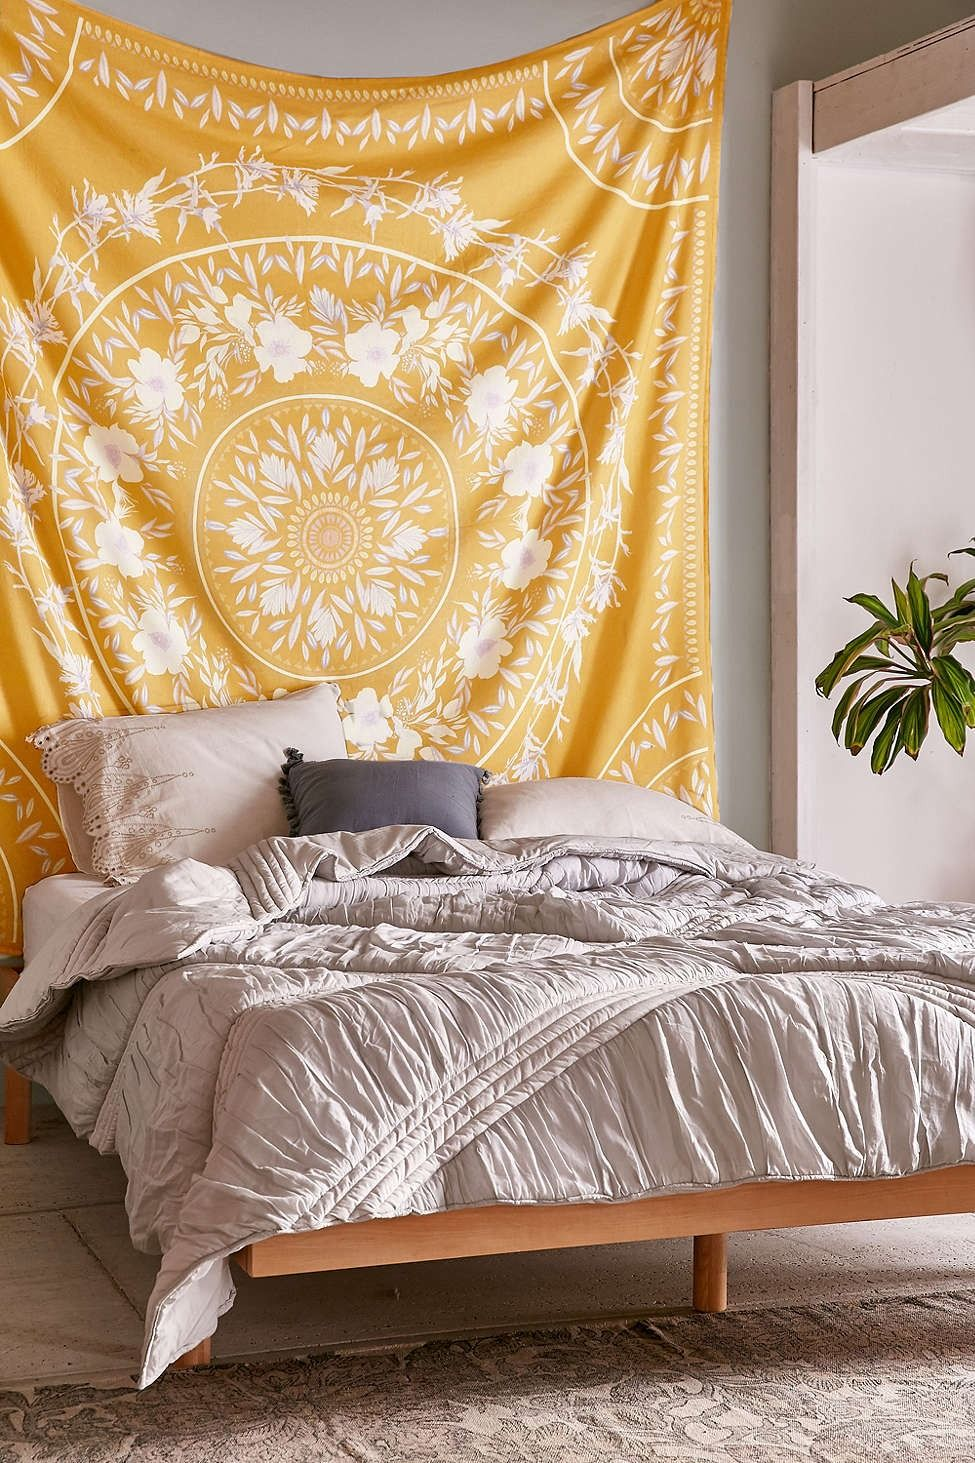 Urban outfitters bedroom tapestry - Sketched Floral Medallion Tapestry